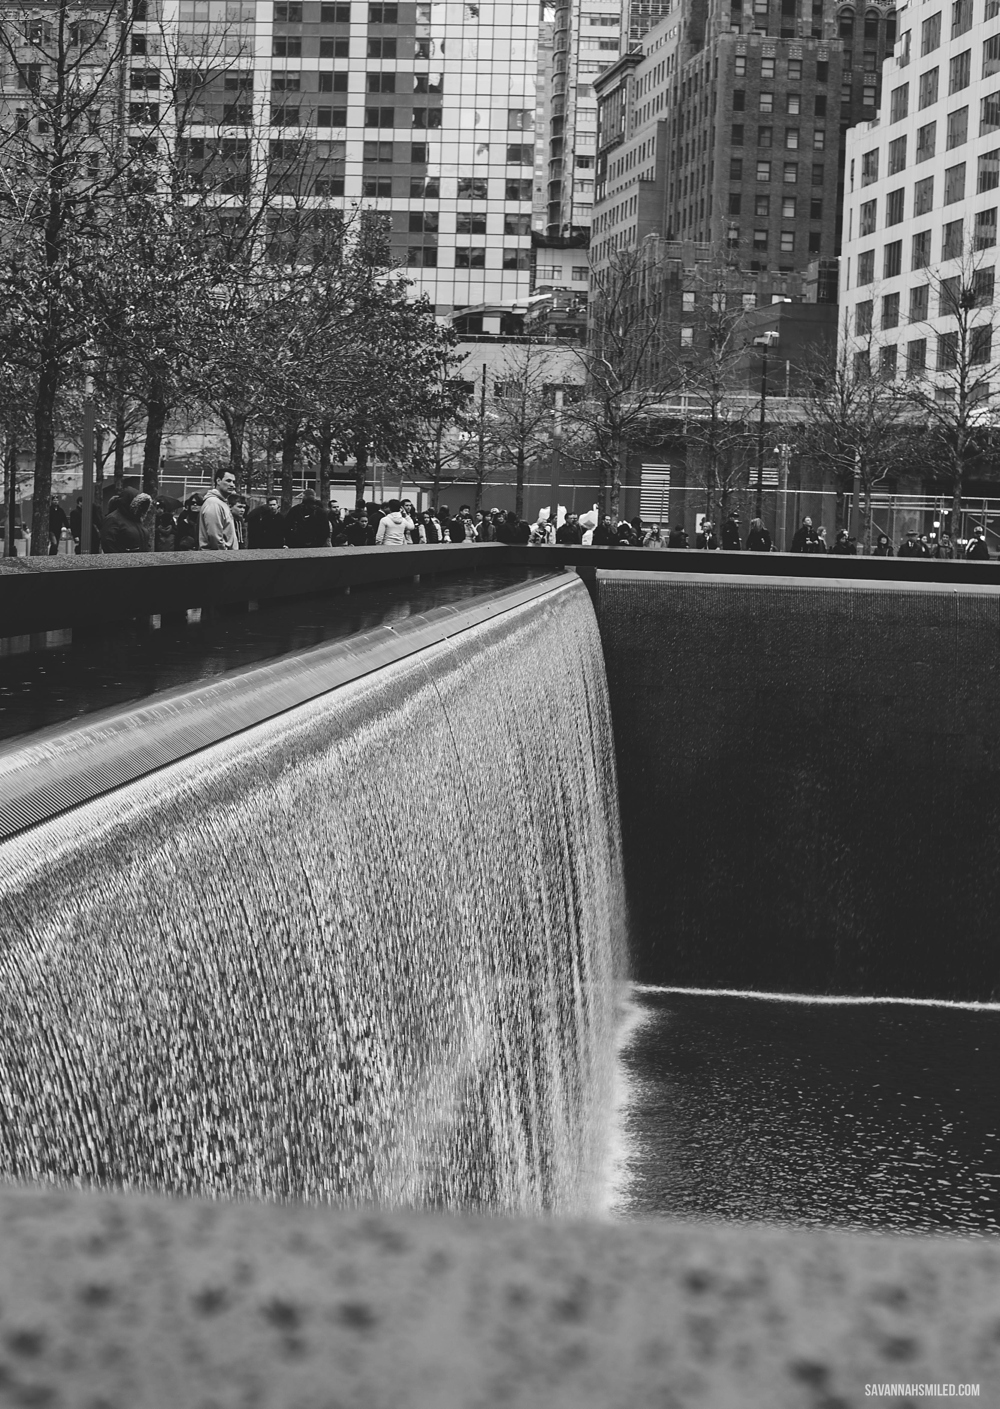 911-new-york-city-memorial-pools-8.jpg